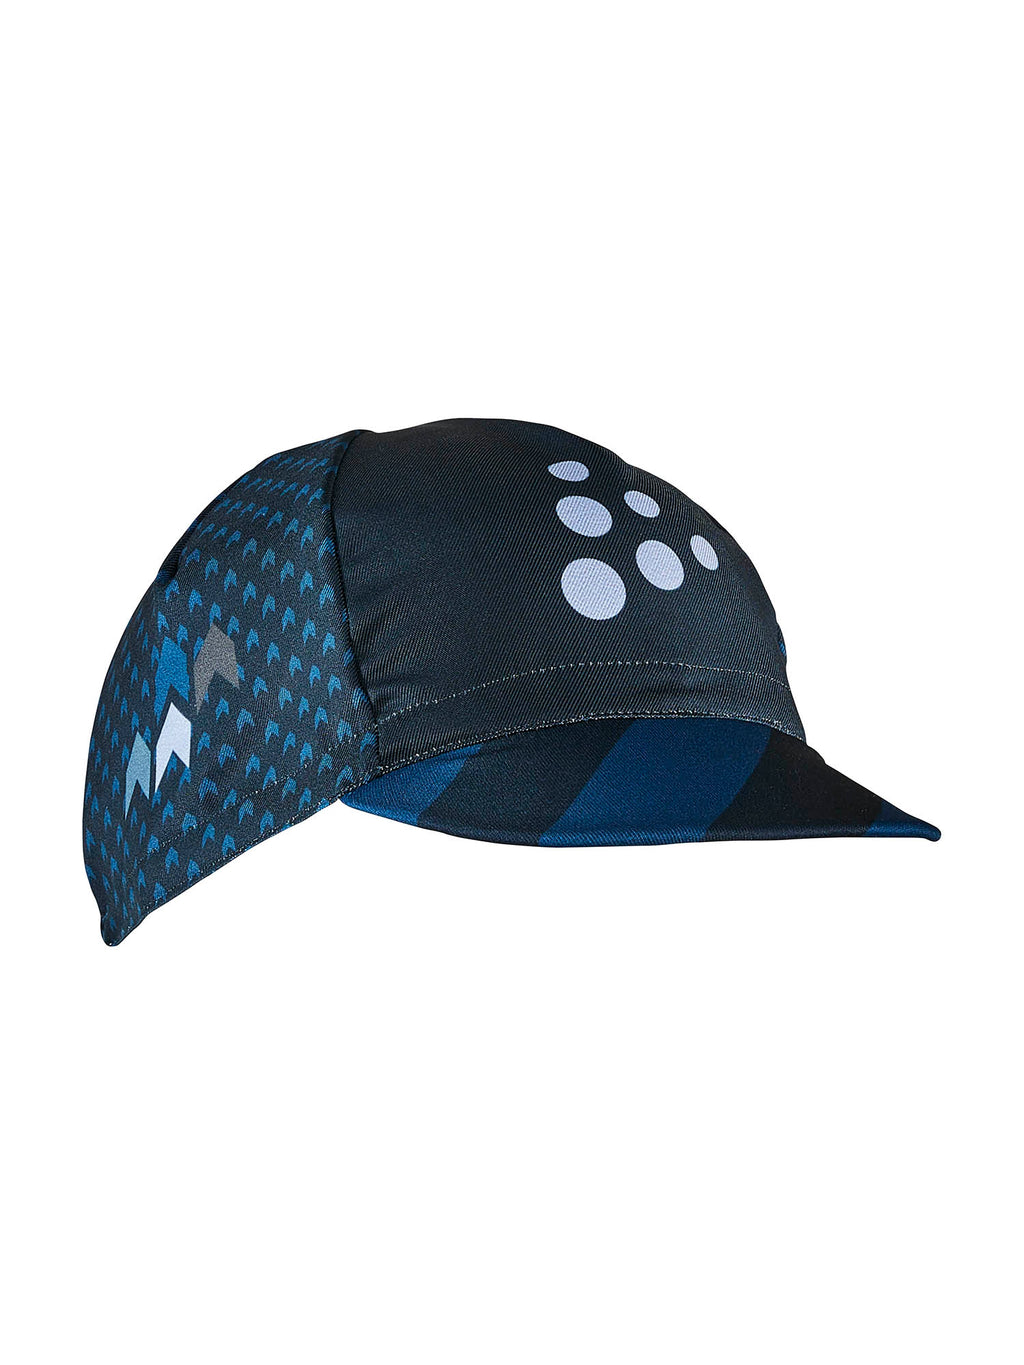 The Handmade Cyclist x Craft Sportswear • Men's 'Sprinteur' Cycling Cap